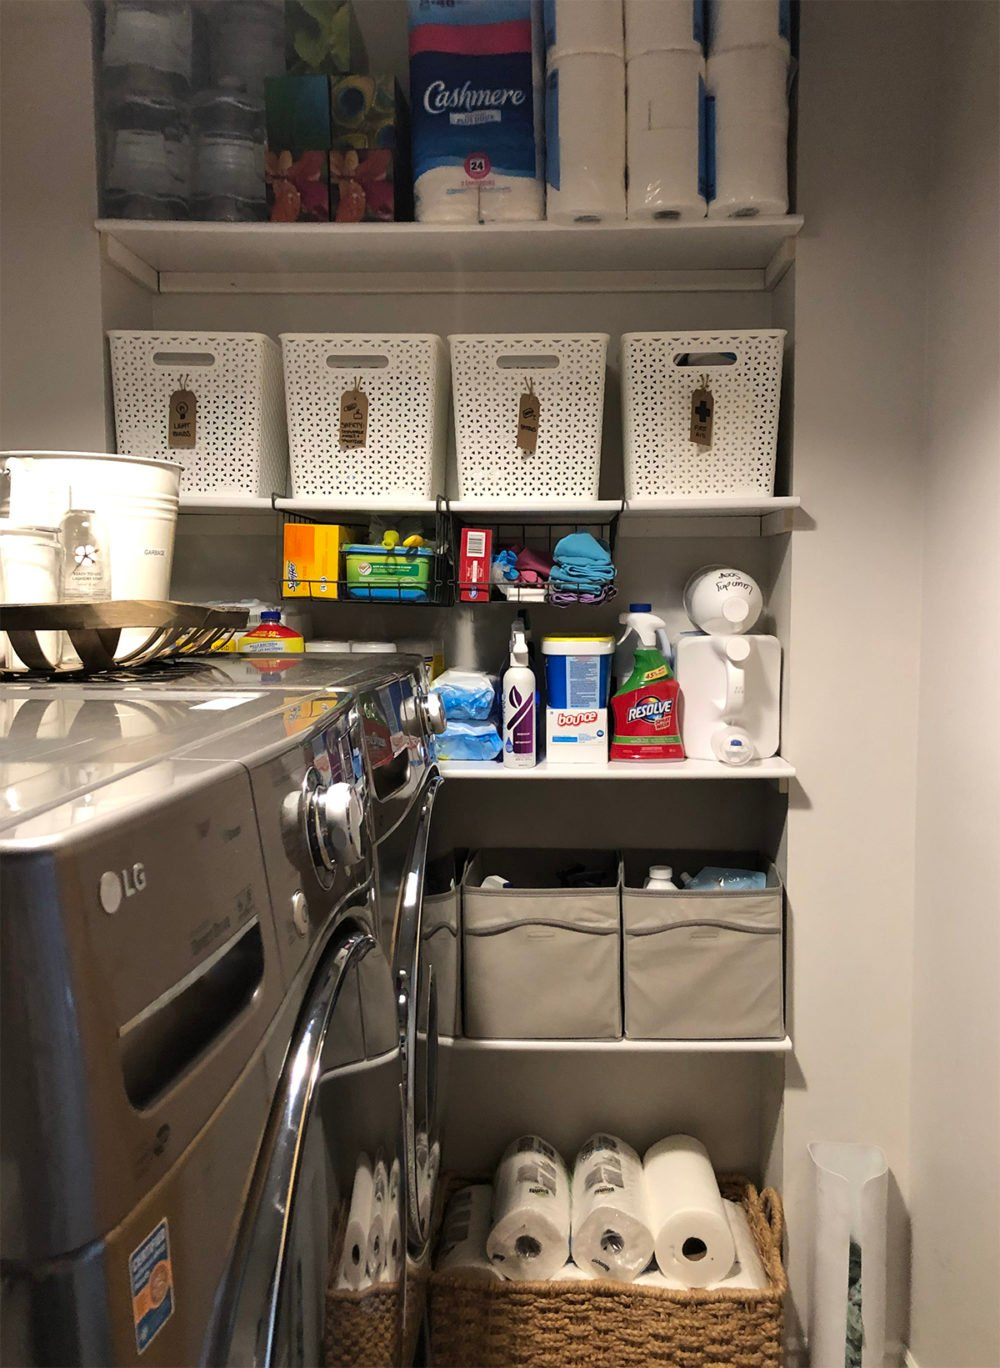 Laundry room shelves after